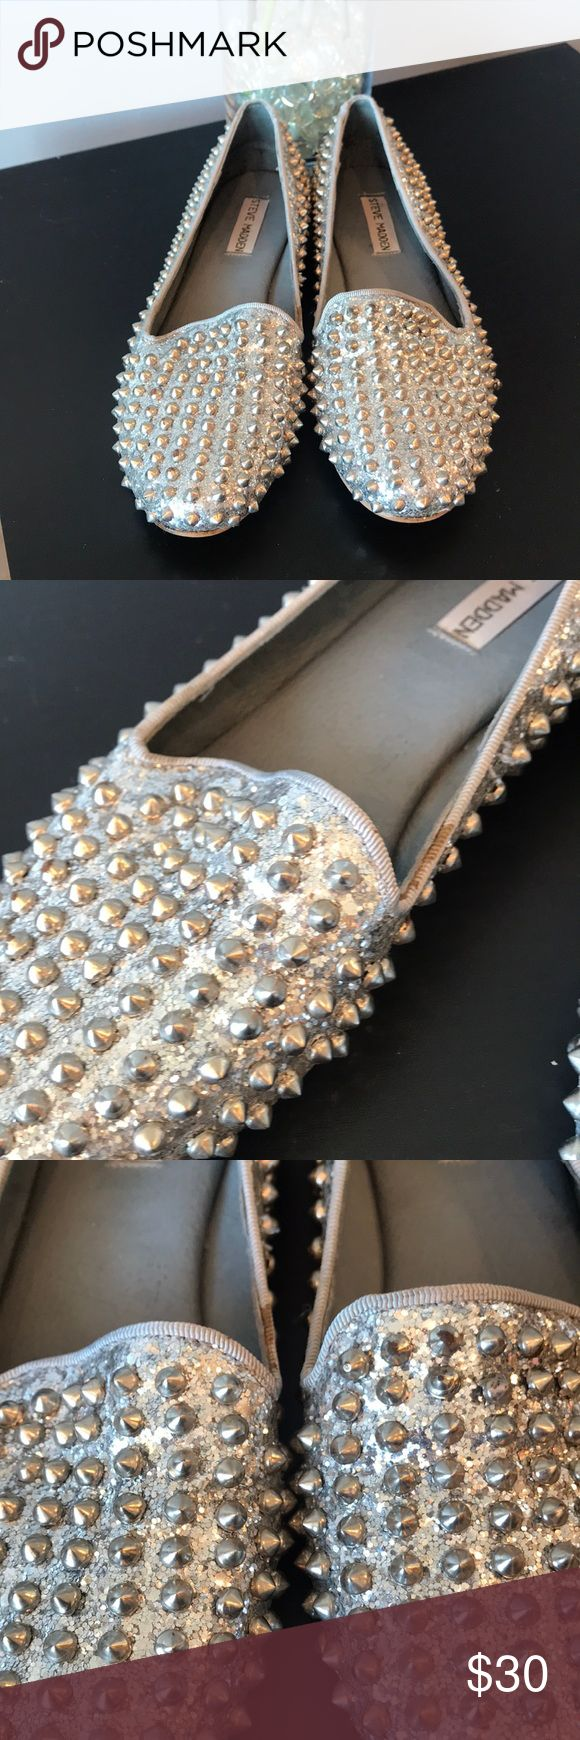 Steve Madden shoes Metallic silver studded Steve Madden flats ! Worn a total of 3 times , in overall good condition, some rusting and lifting on some of the studs and a small stain on the side of one shoe (as shown in photo ) Steve Madden Shoes Flats & Loafers